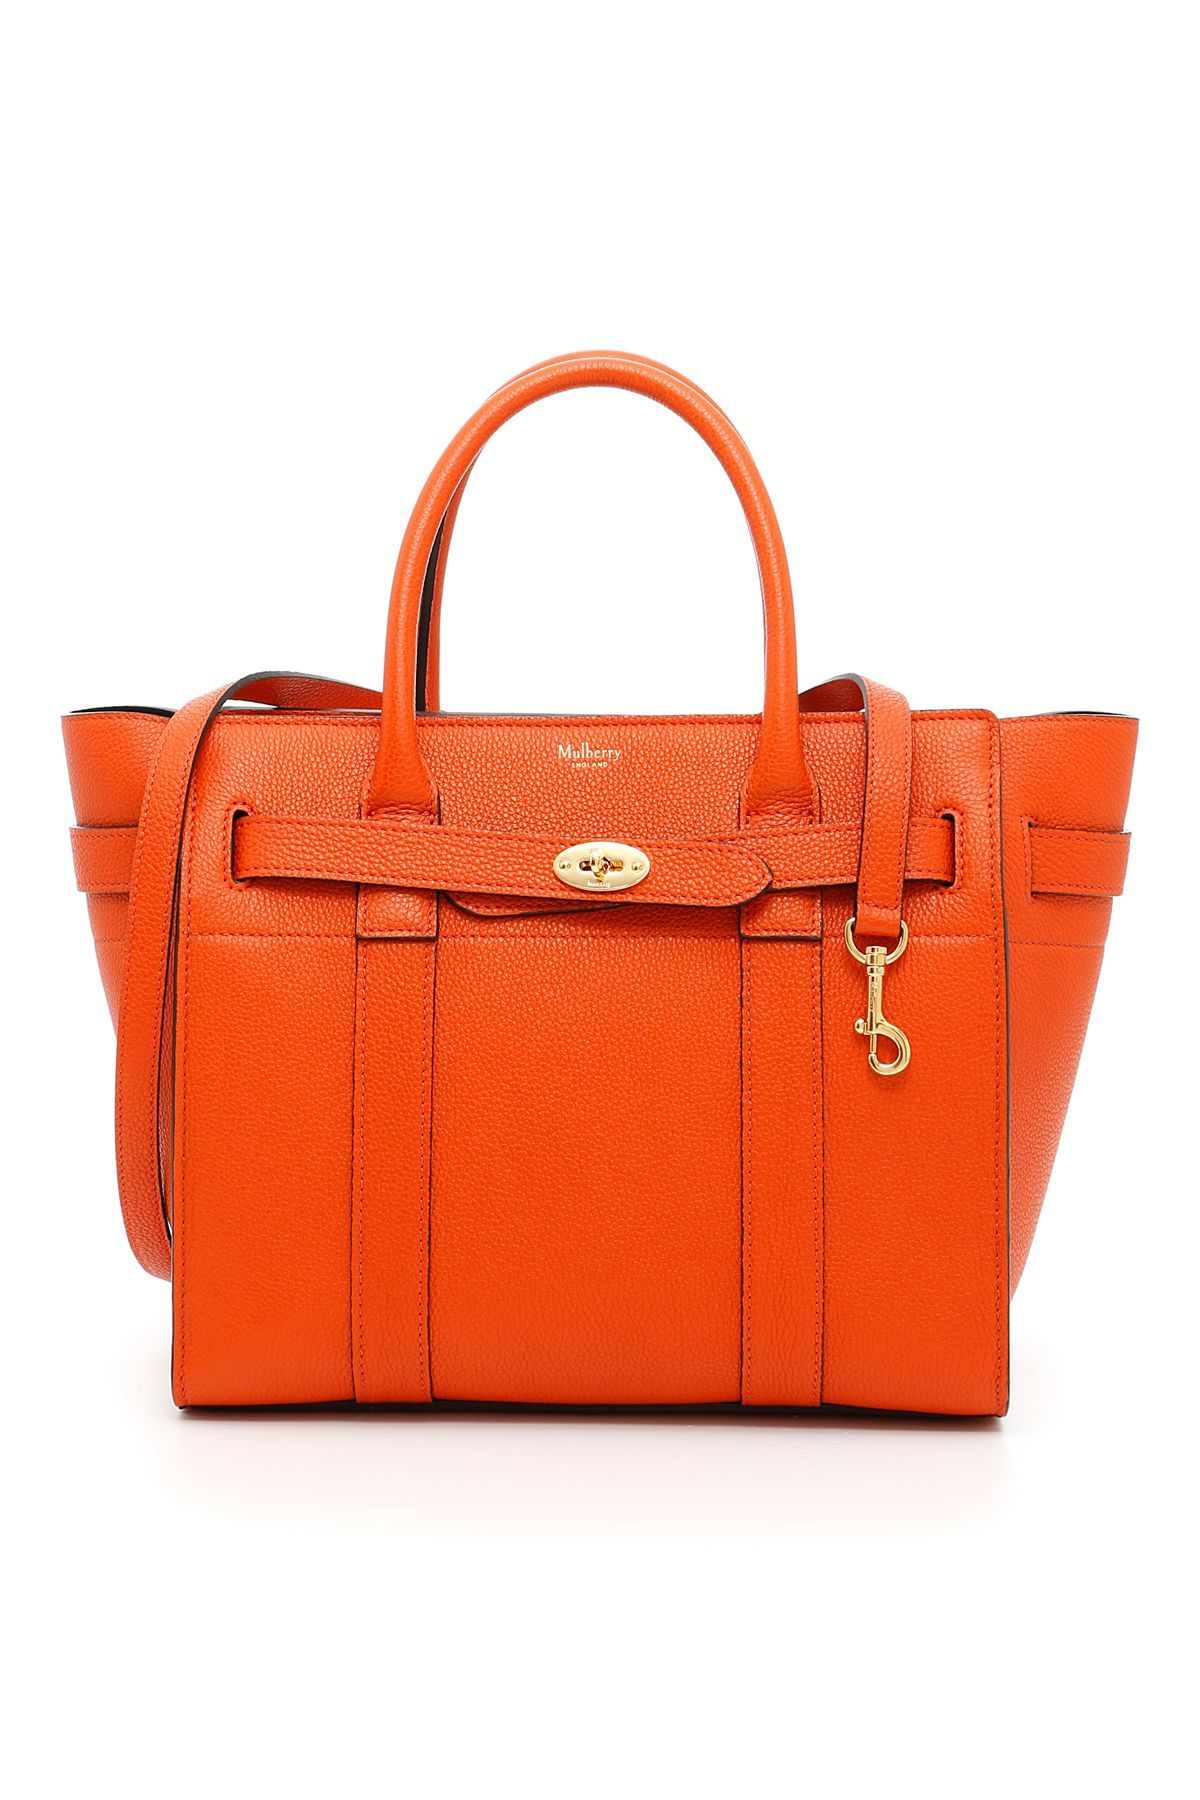 MULBERRY . #mulberry #bags #shoulder bags #hand bags #suede #lining # #mulberrybag